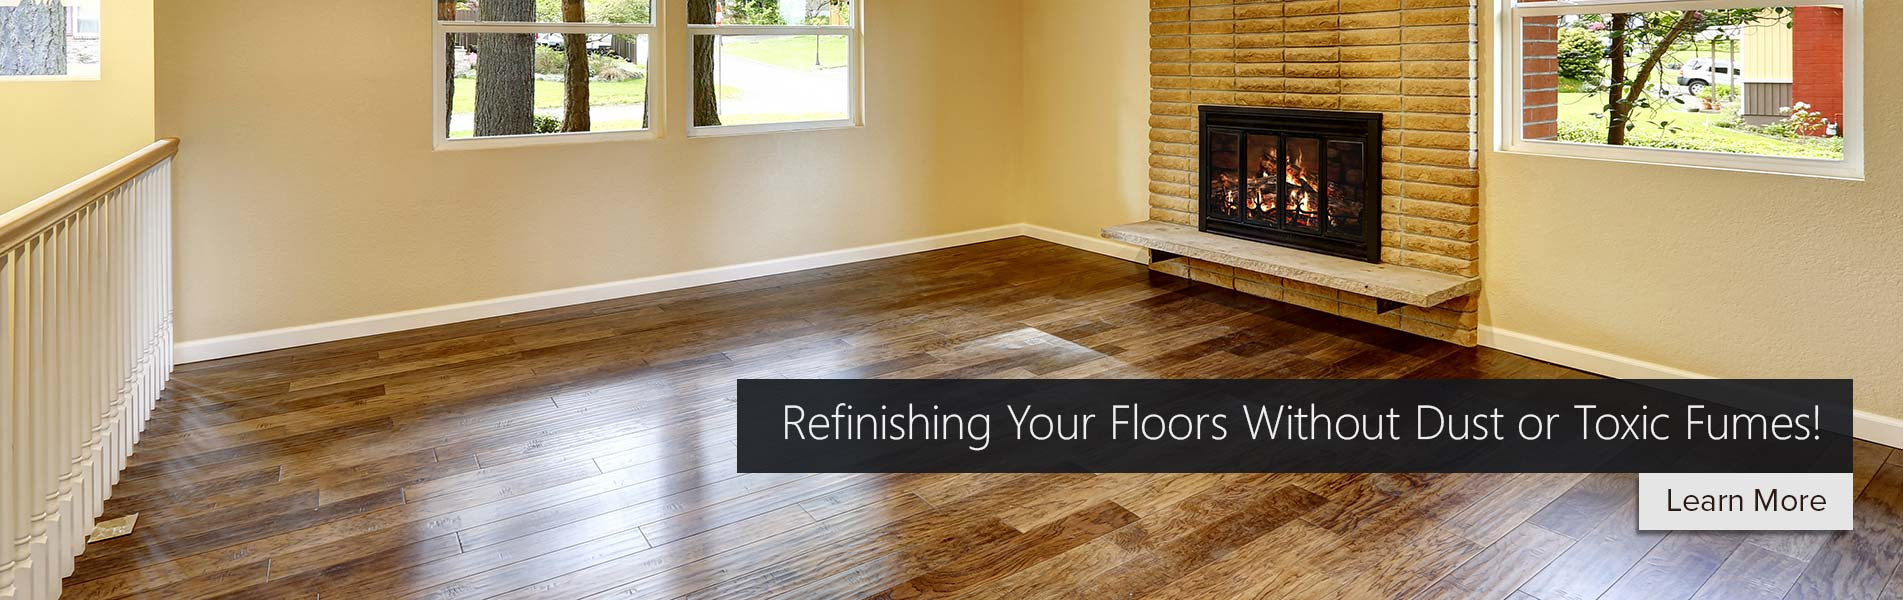 Knox Hardwood Flooring Co Knoxville Tn Of Hardwood Floor Refinishing Services In Knoxville Tn with 483